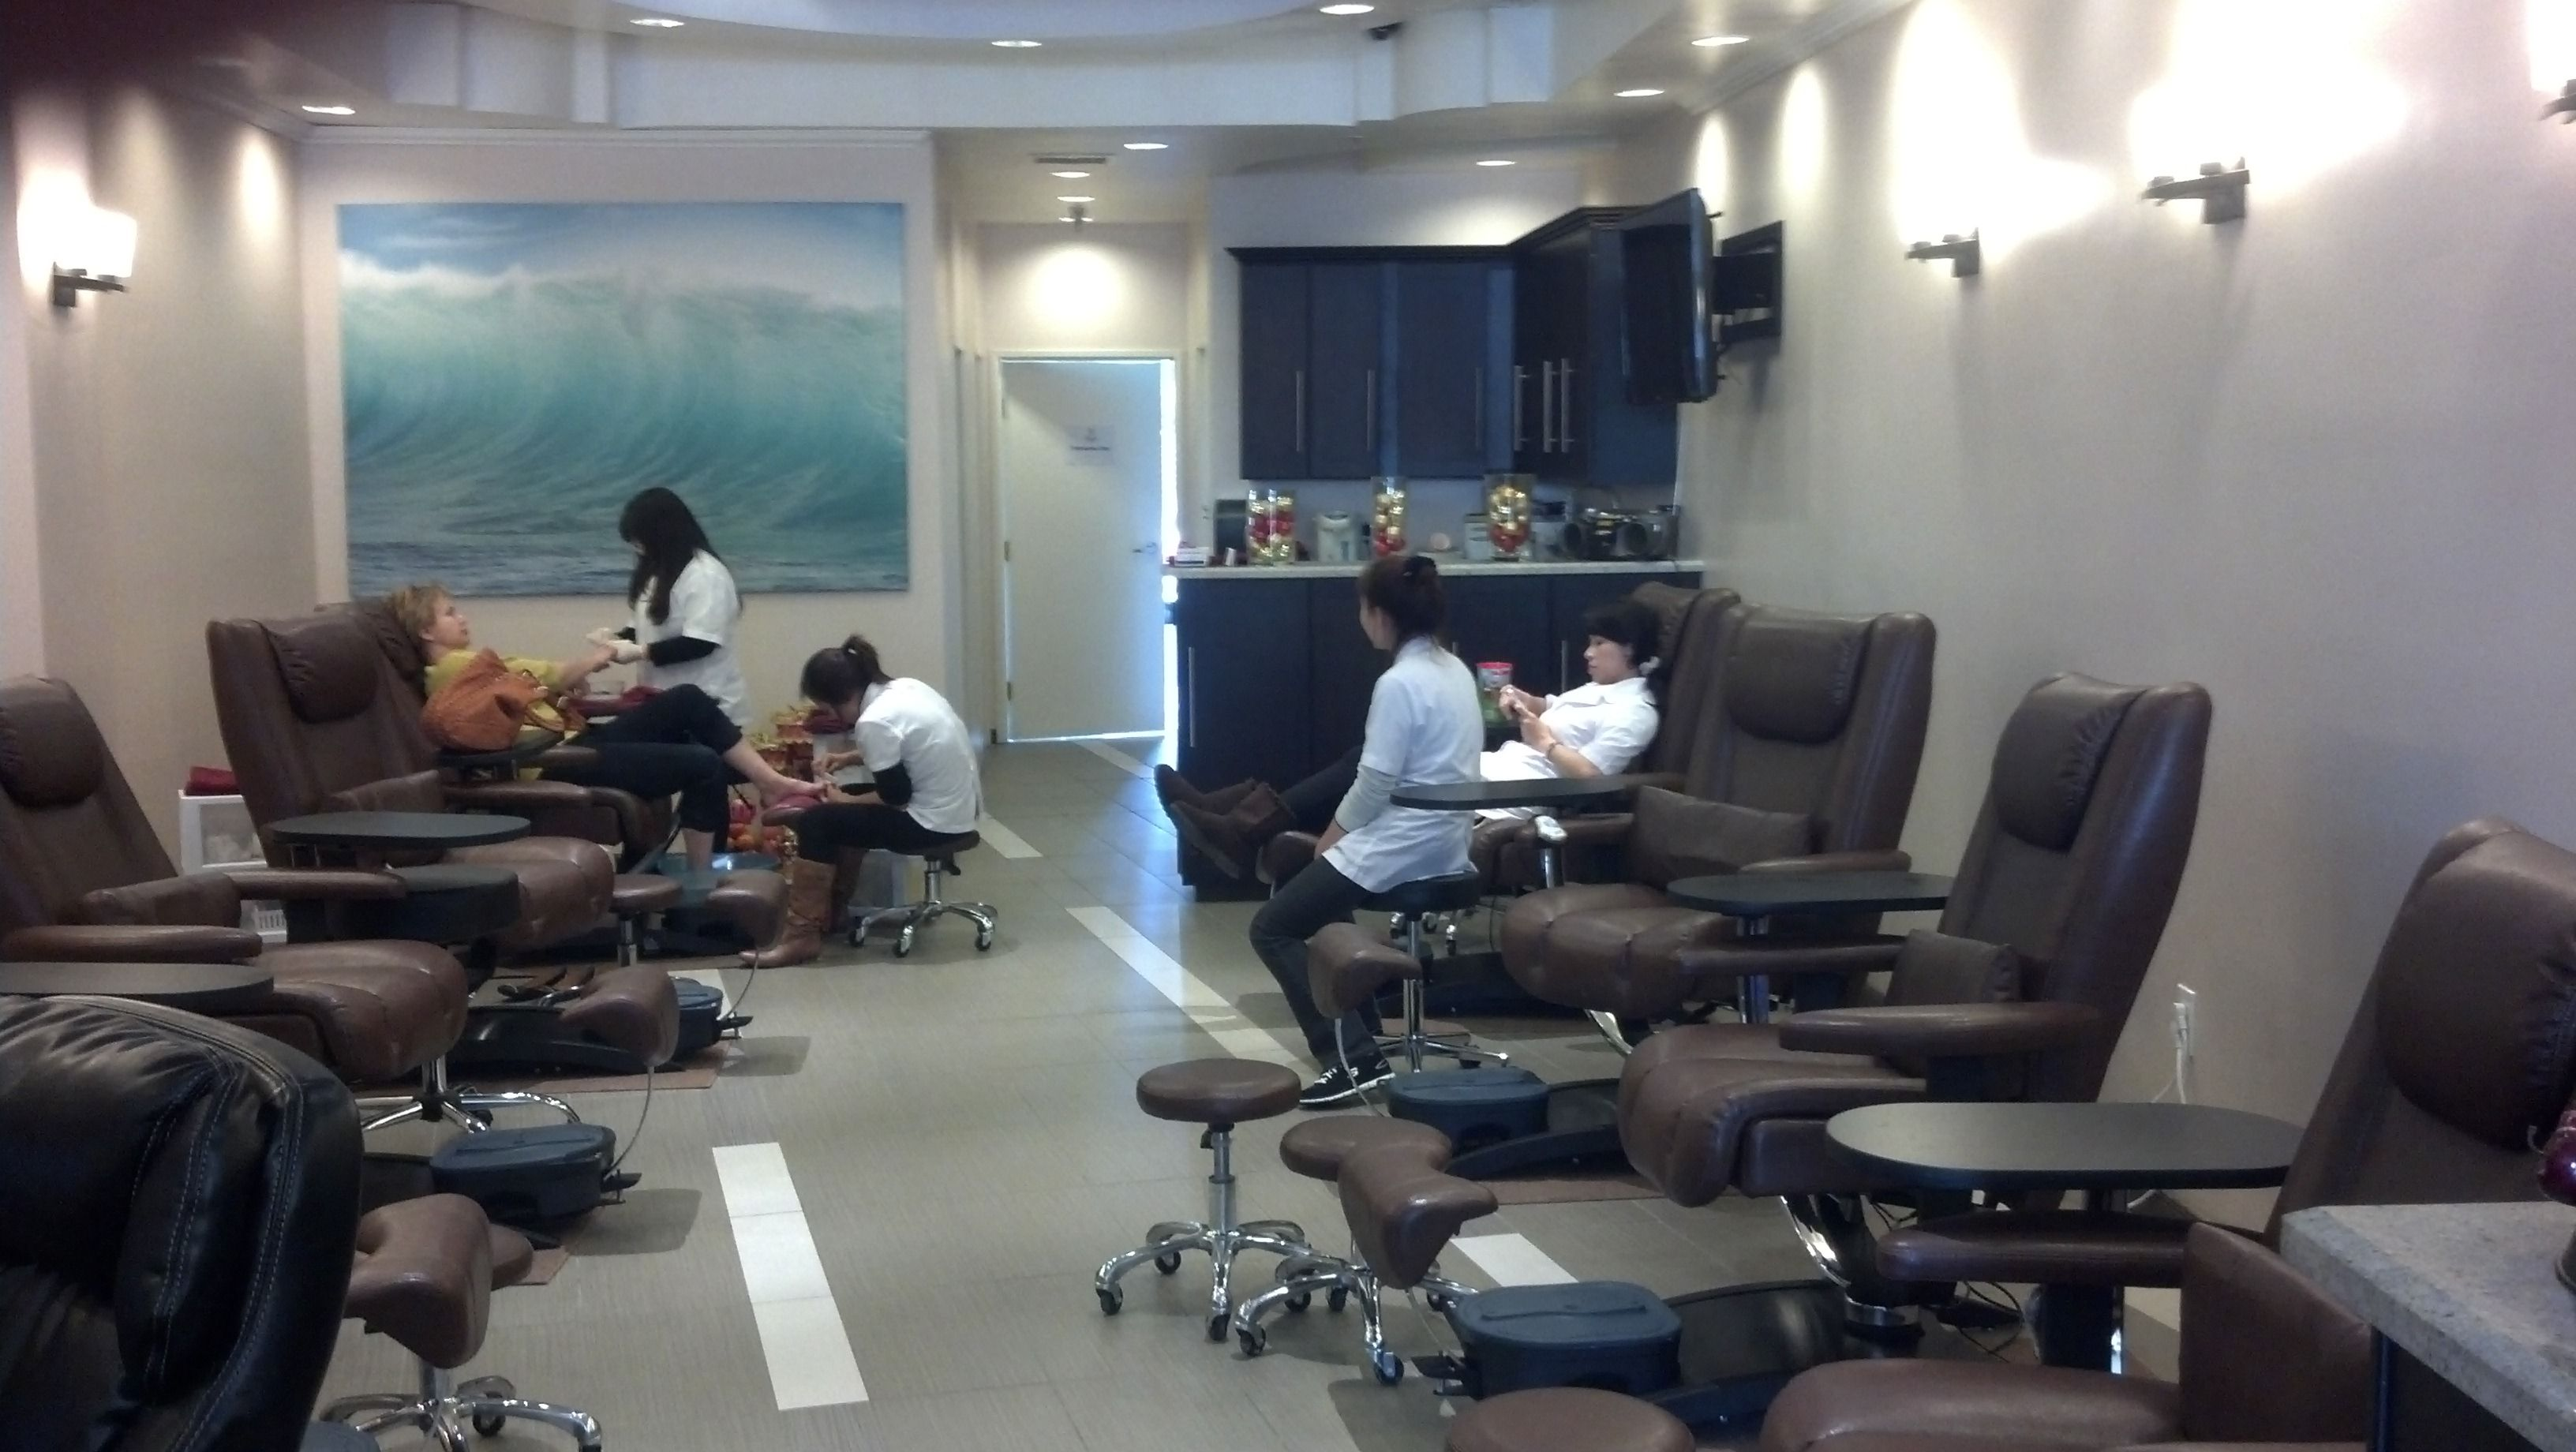 Belava S No Plumbing Embrace Pedicure Chairs Pedicure Chairs For Sale Salon Chairs For Sale Game Room Chairs